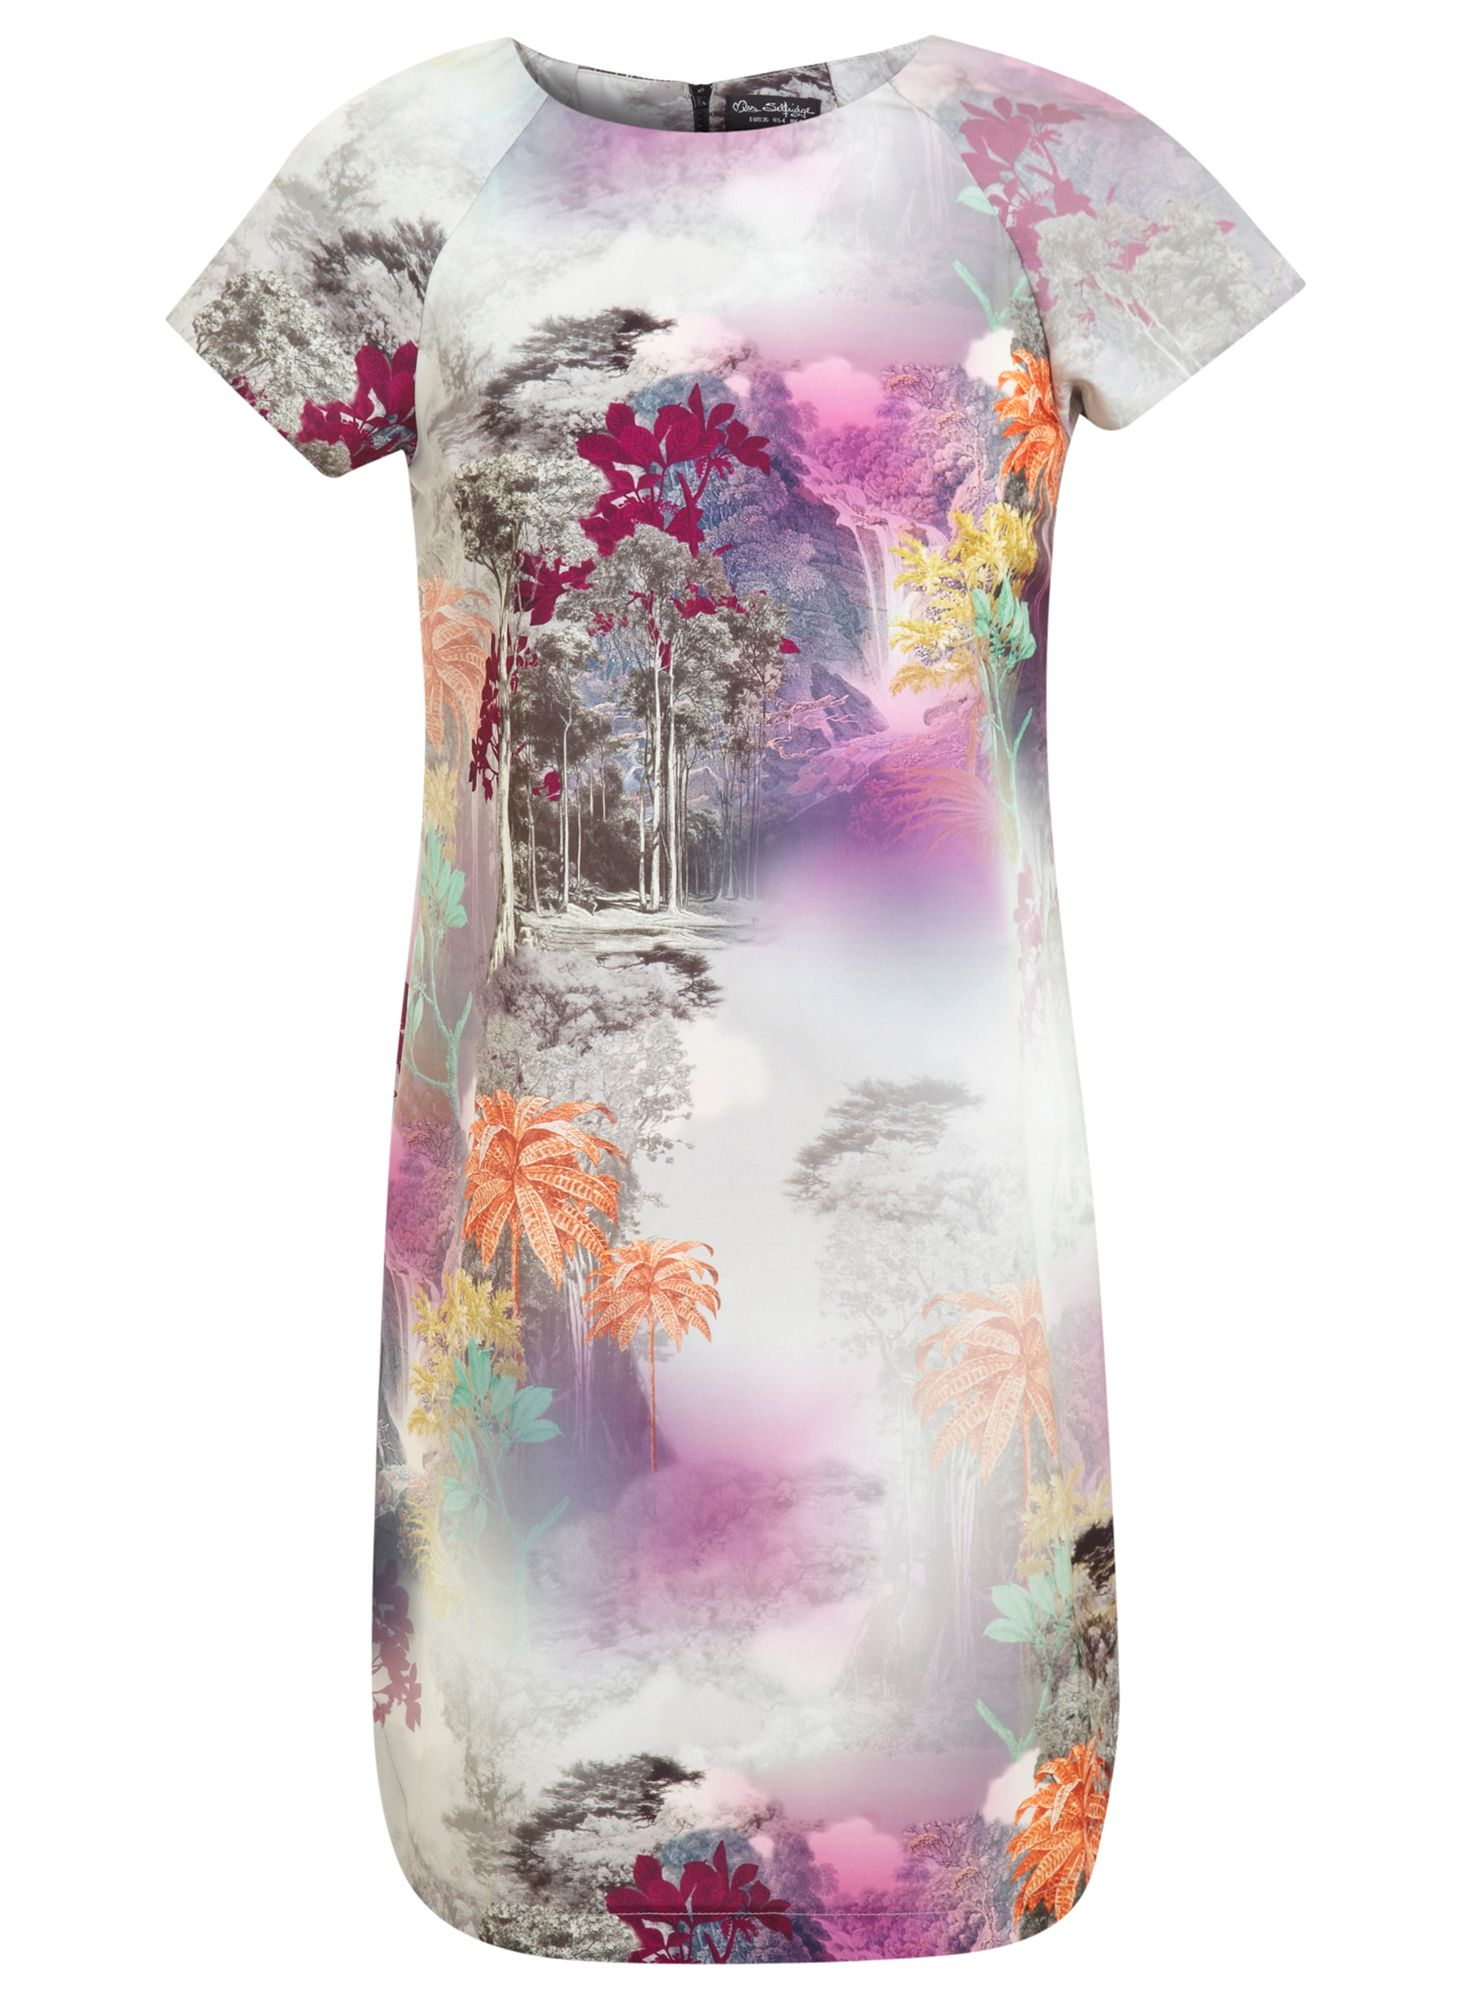 Digital t-shirt dress